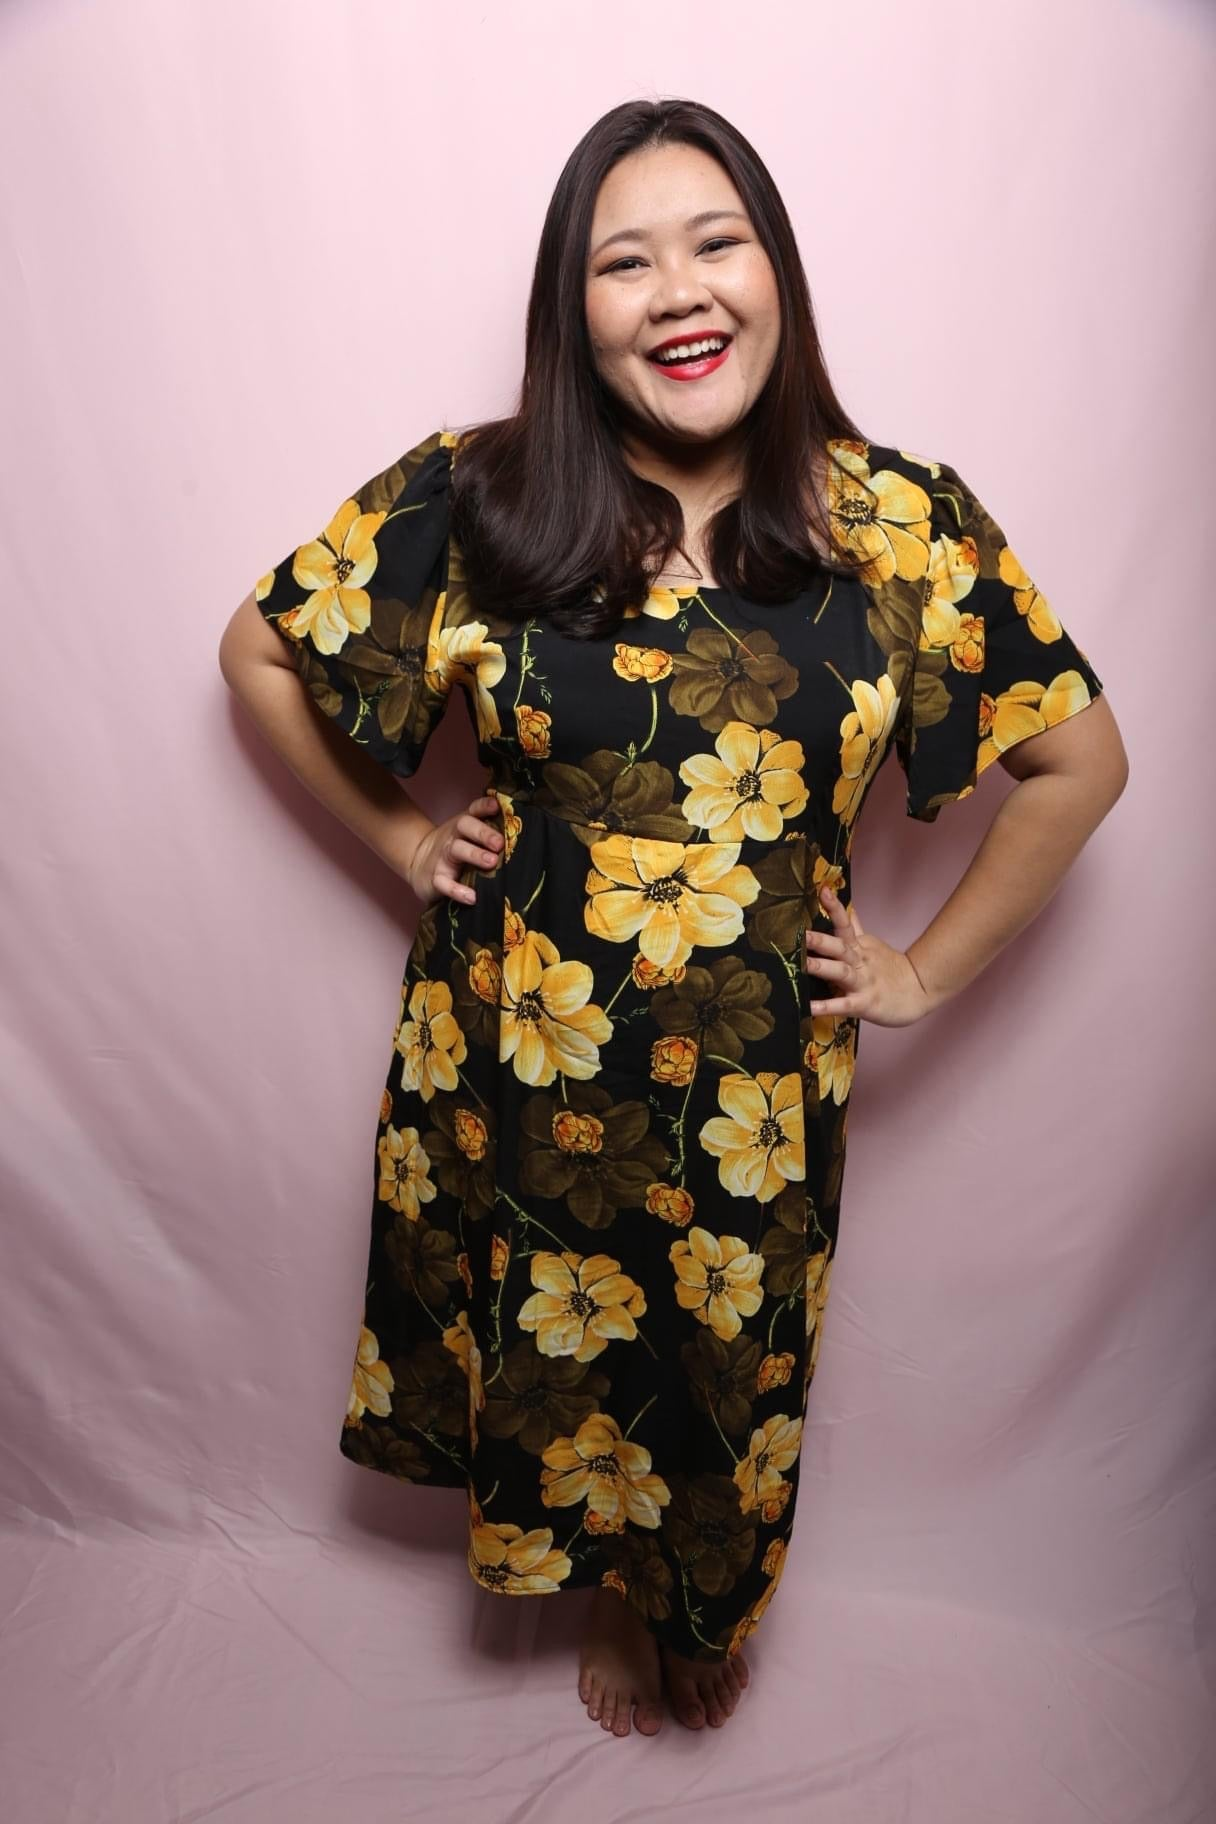 Cora Yellow Floral Dress (Plus Size Dress)